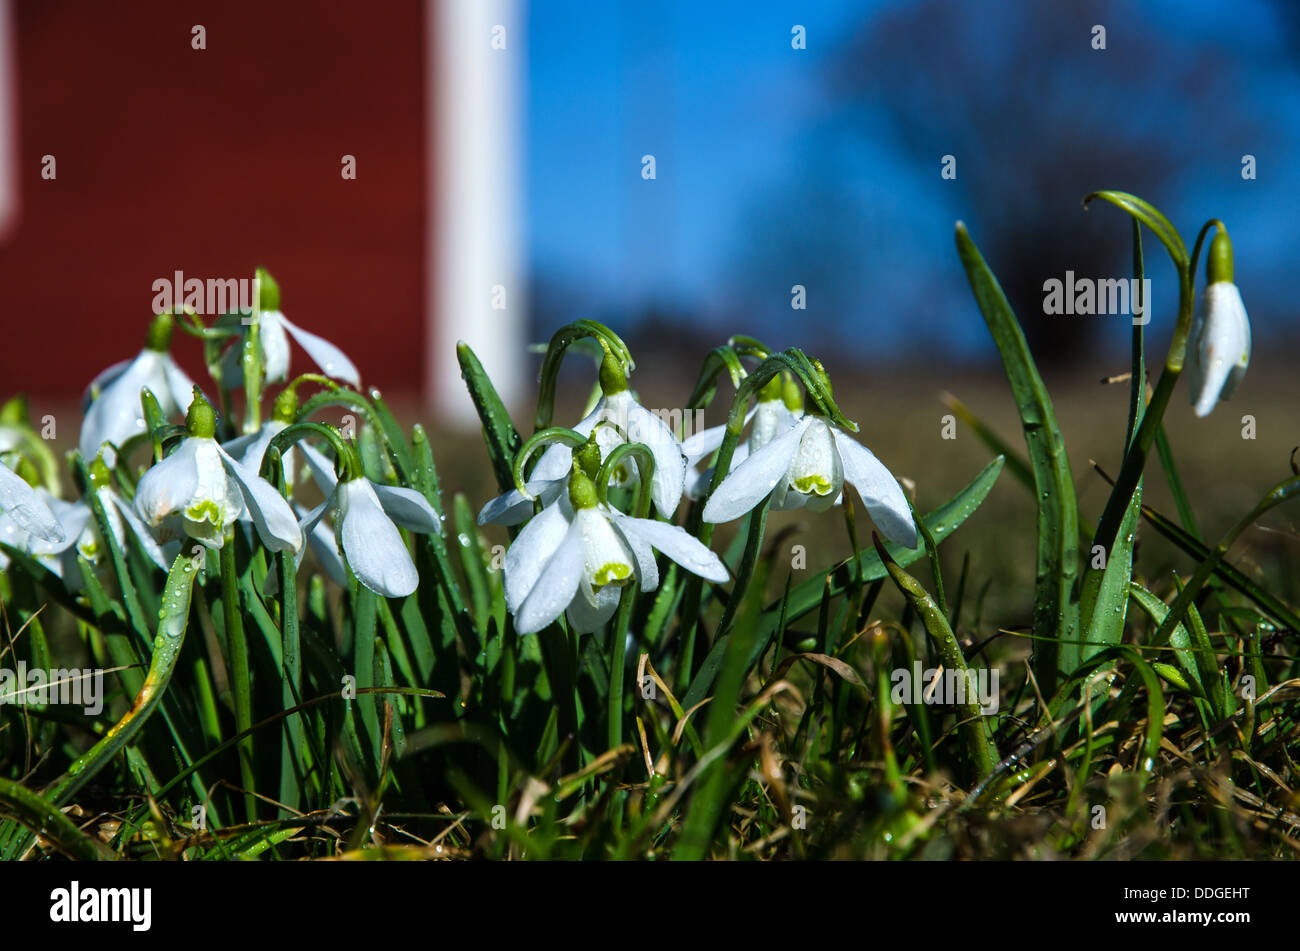 Snowdrops with dewdrops in an old garden. - Stock Image